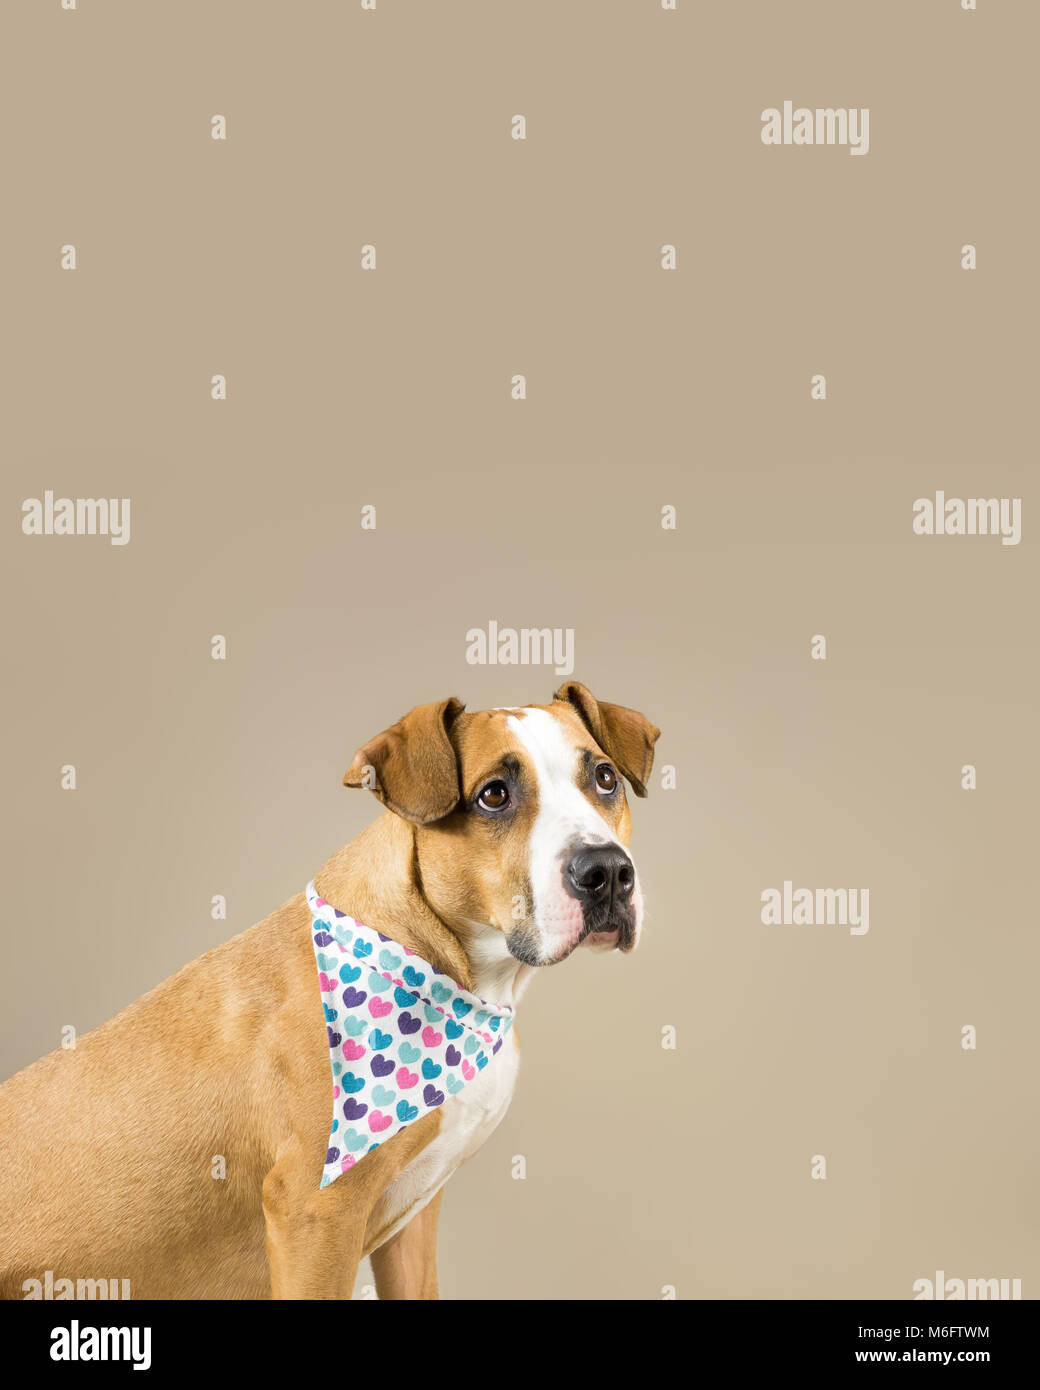 Young pitbull terrier dog poses in neutral background for valentine's day greeting card. Adorable staffordshire - Stock Image